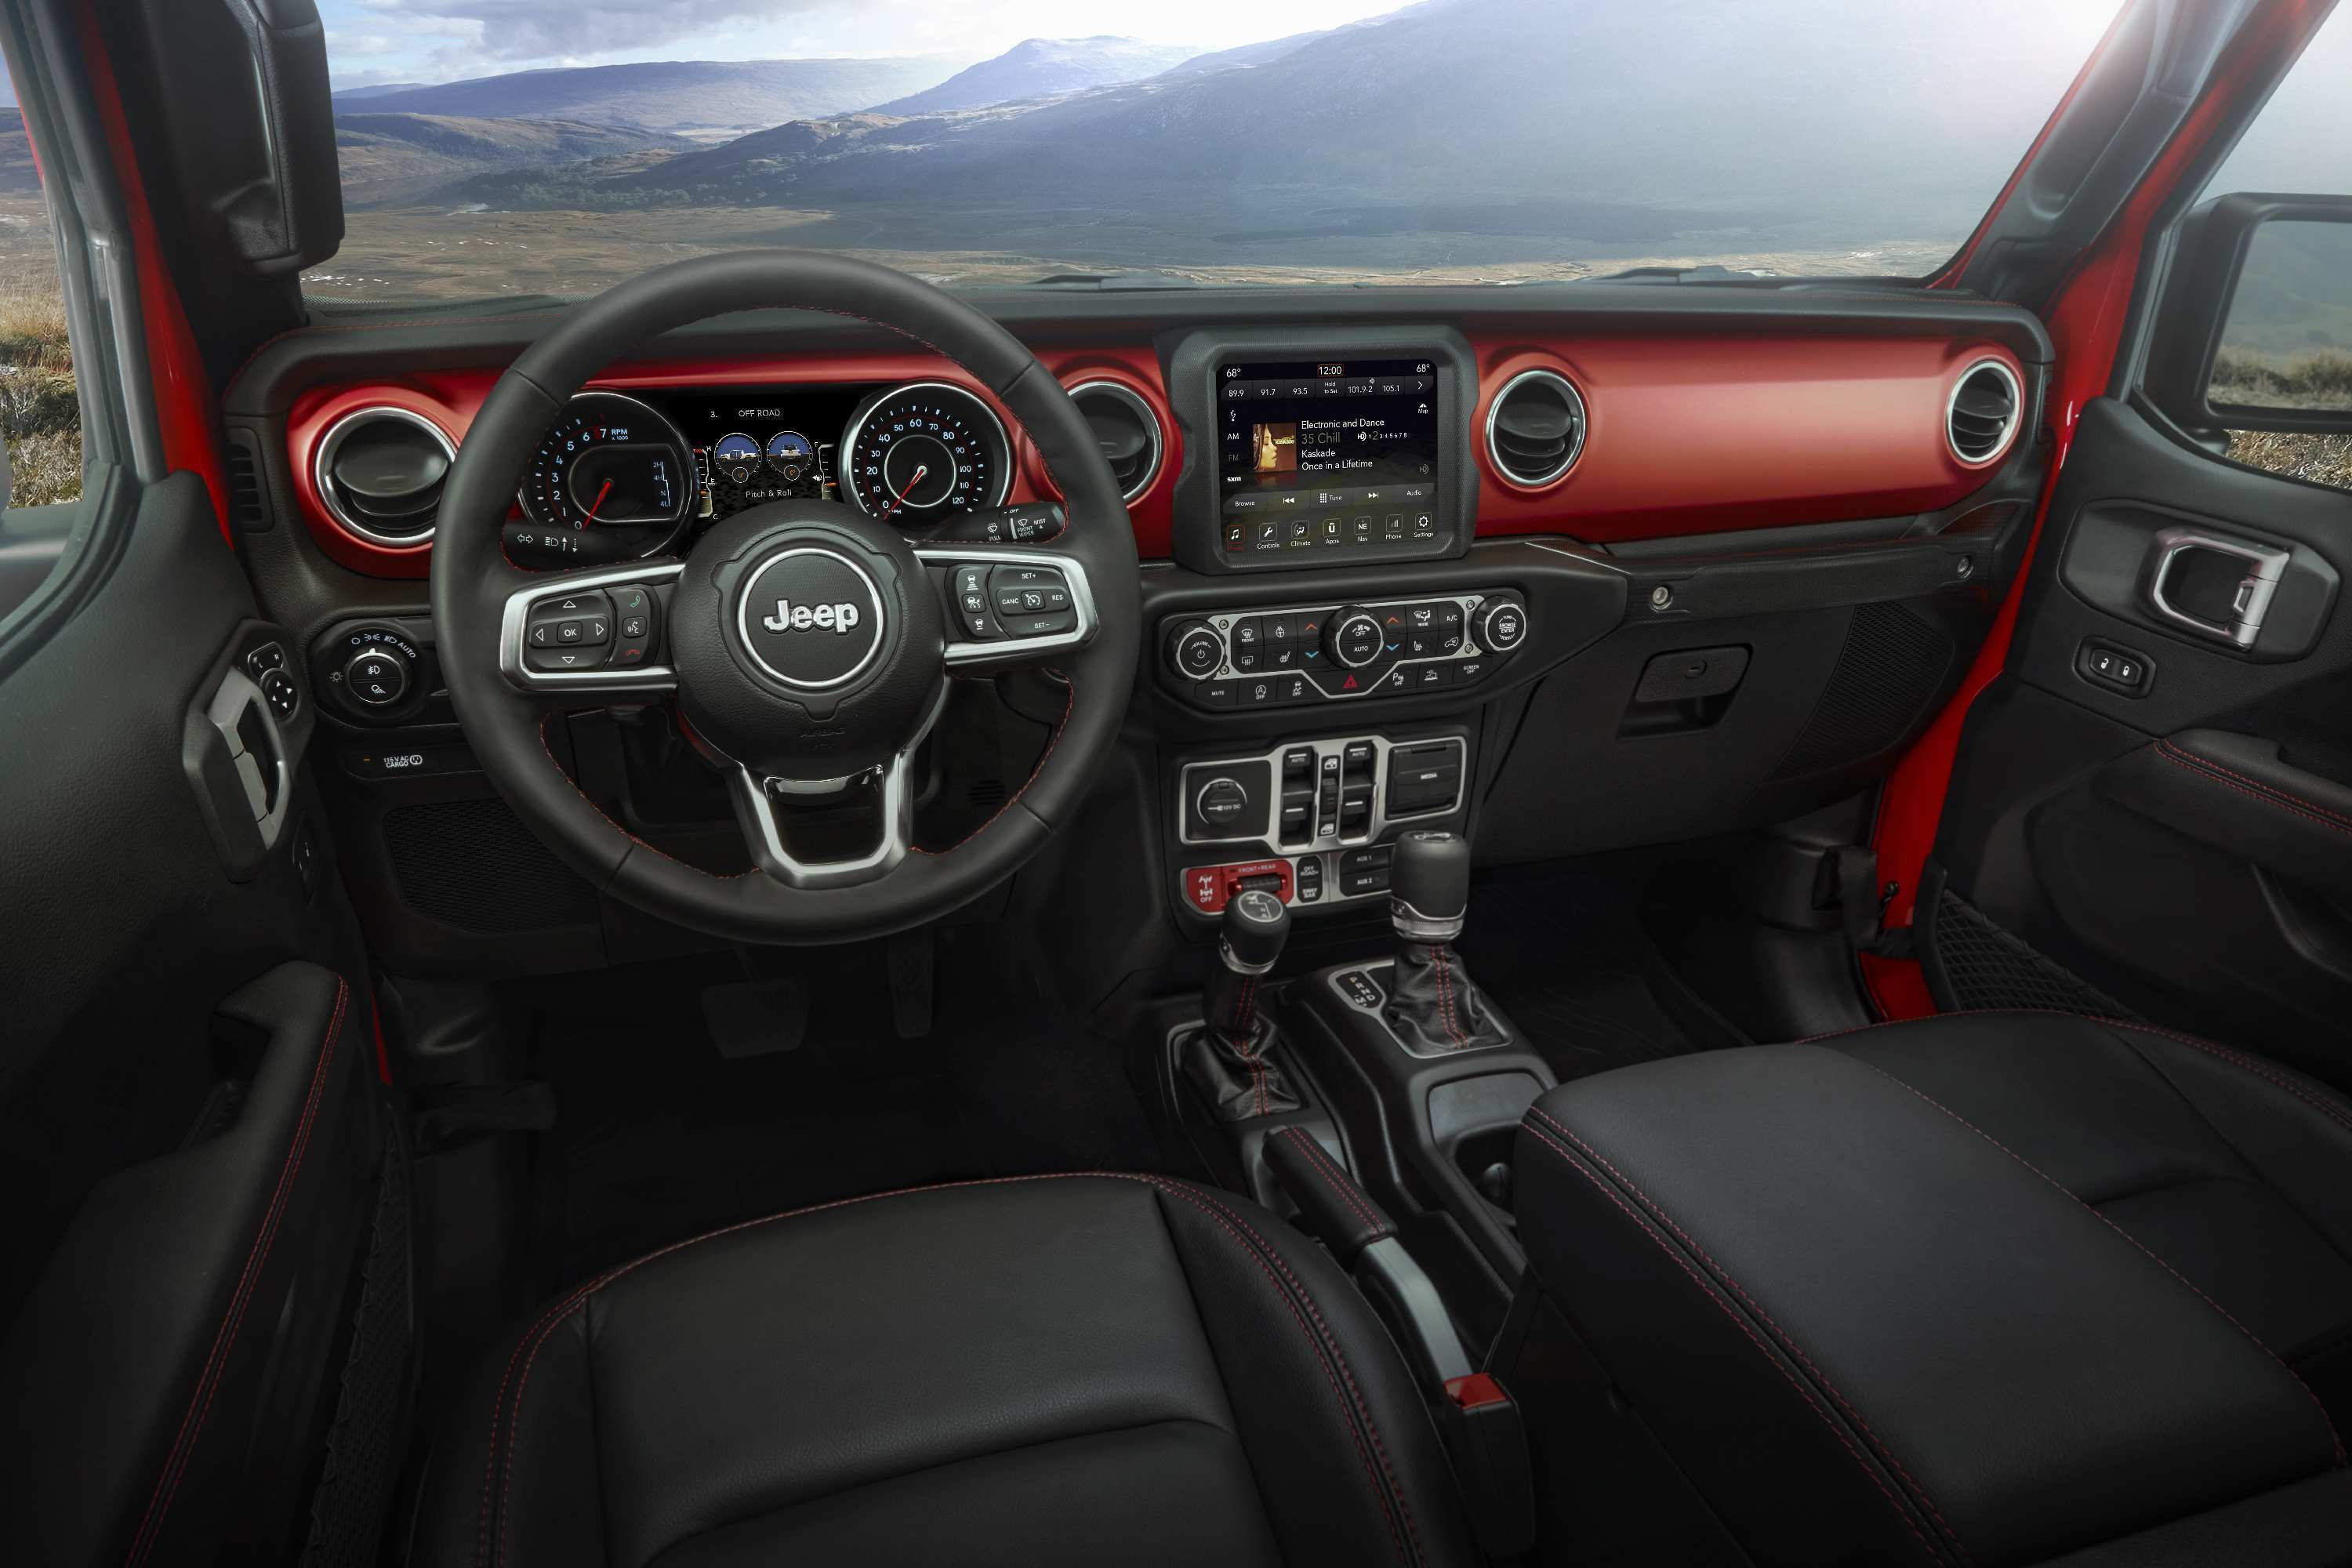 87 All New Jeep Truck 2020 Interior Concept And Review